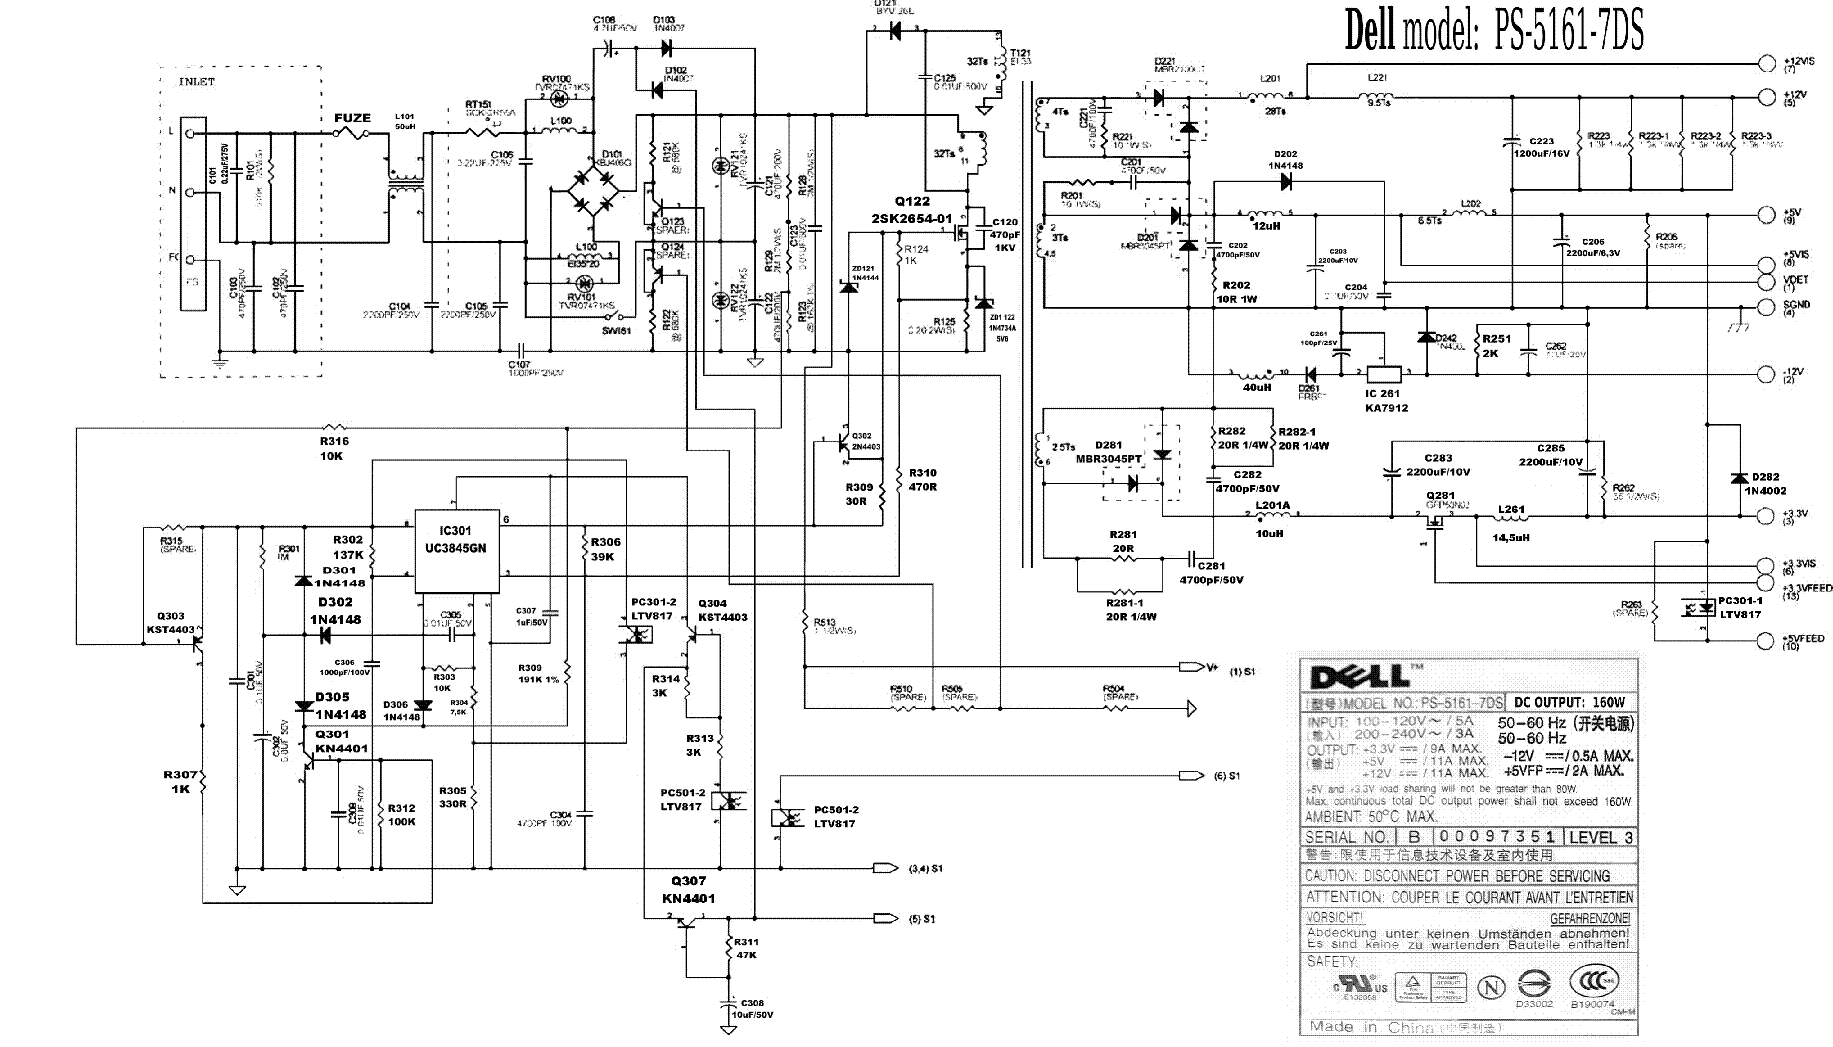 DELL PS-5161 7DS POWER SUPPLY SCHEMATIC service manual (1st page)